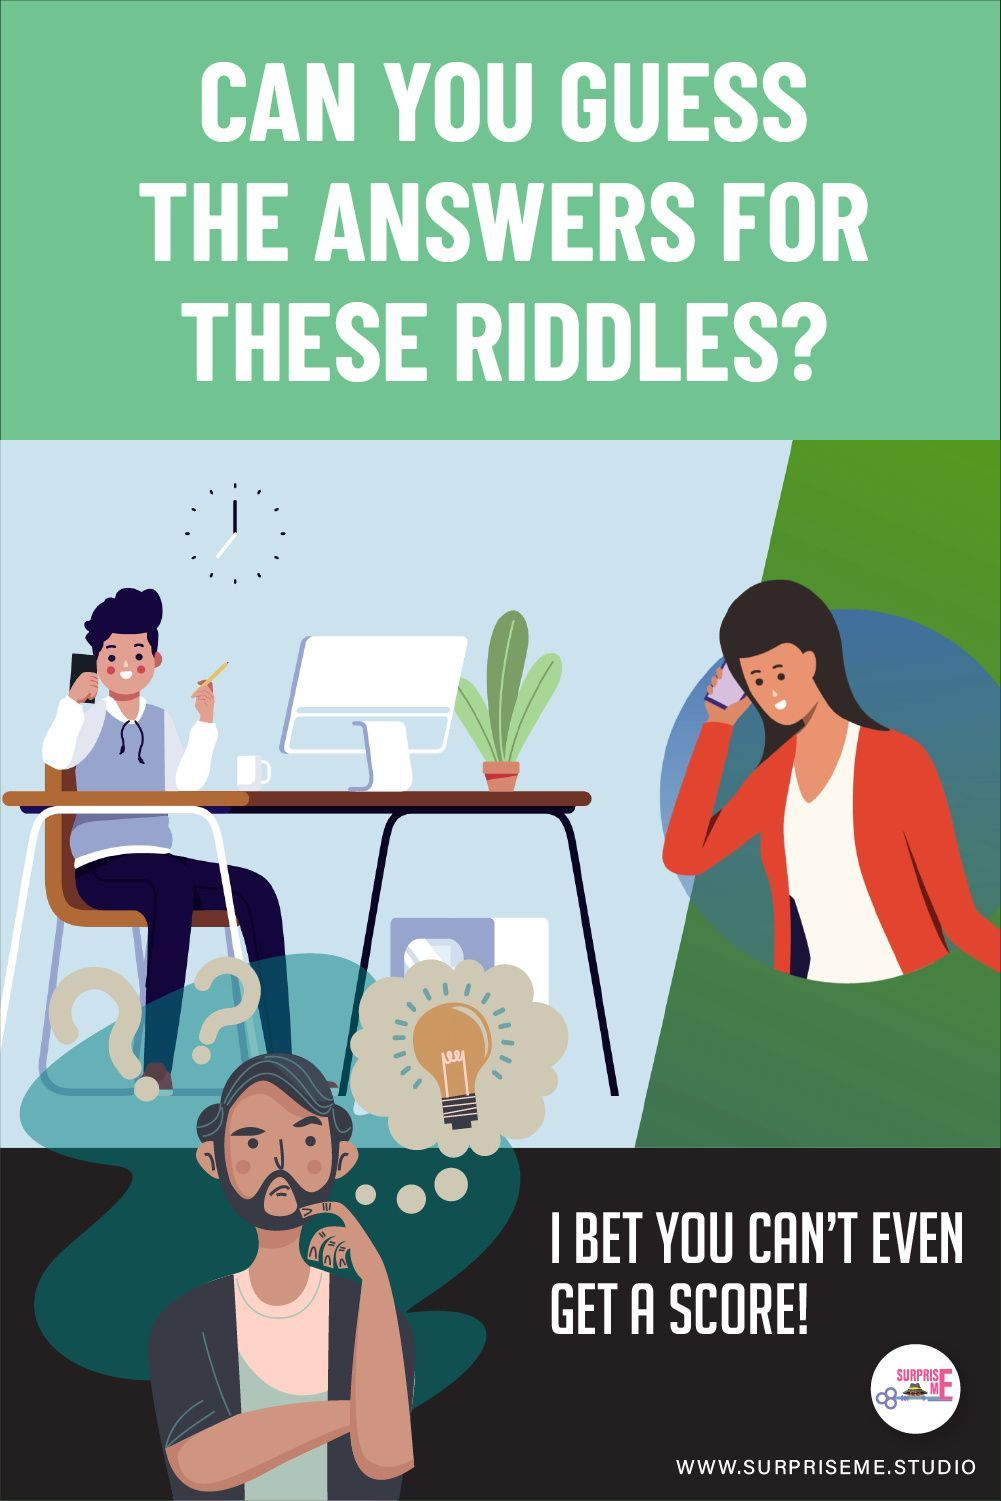 Can You Guess the Answers for these Riddles? I Bet You